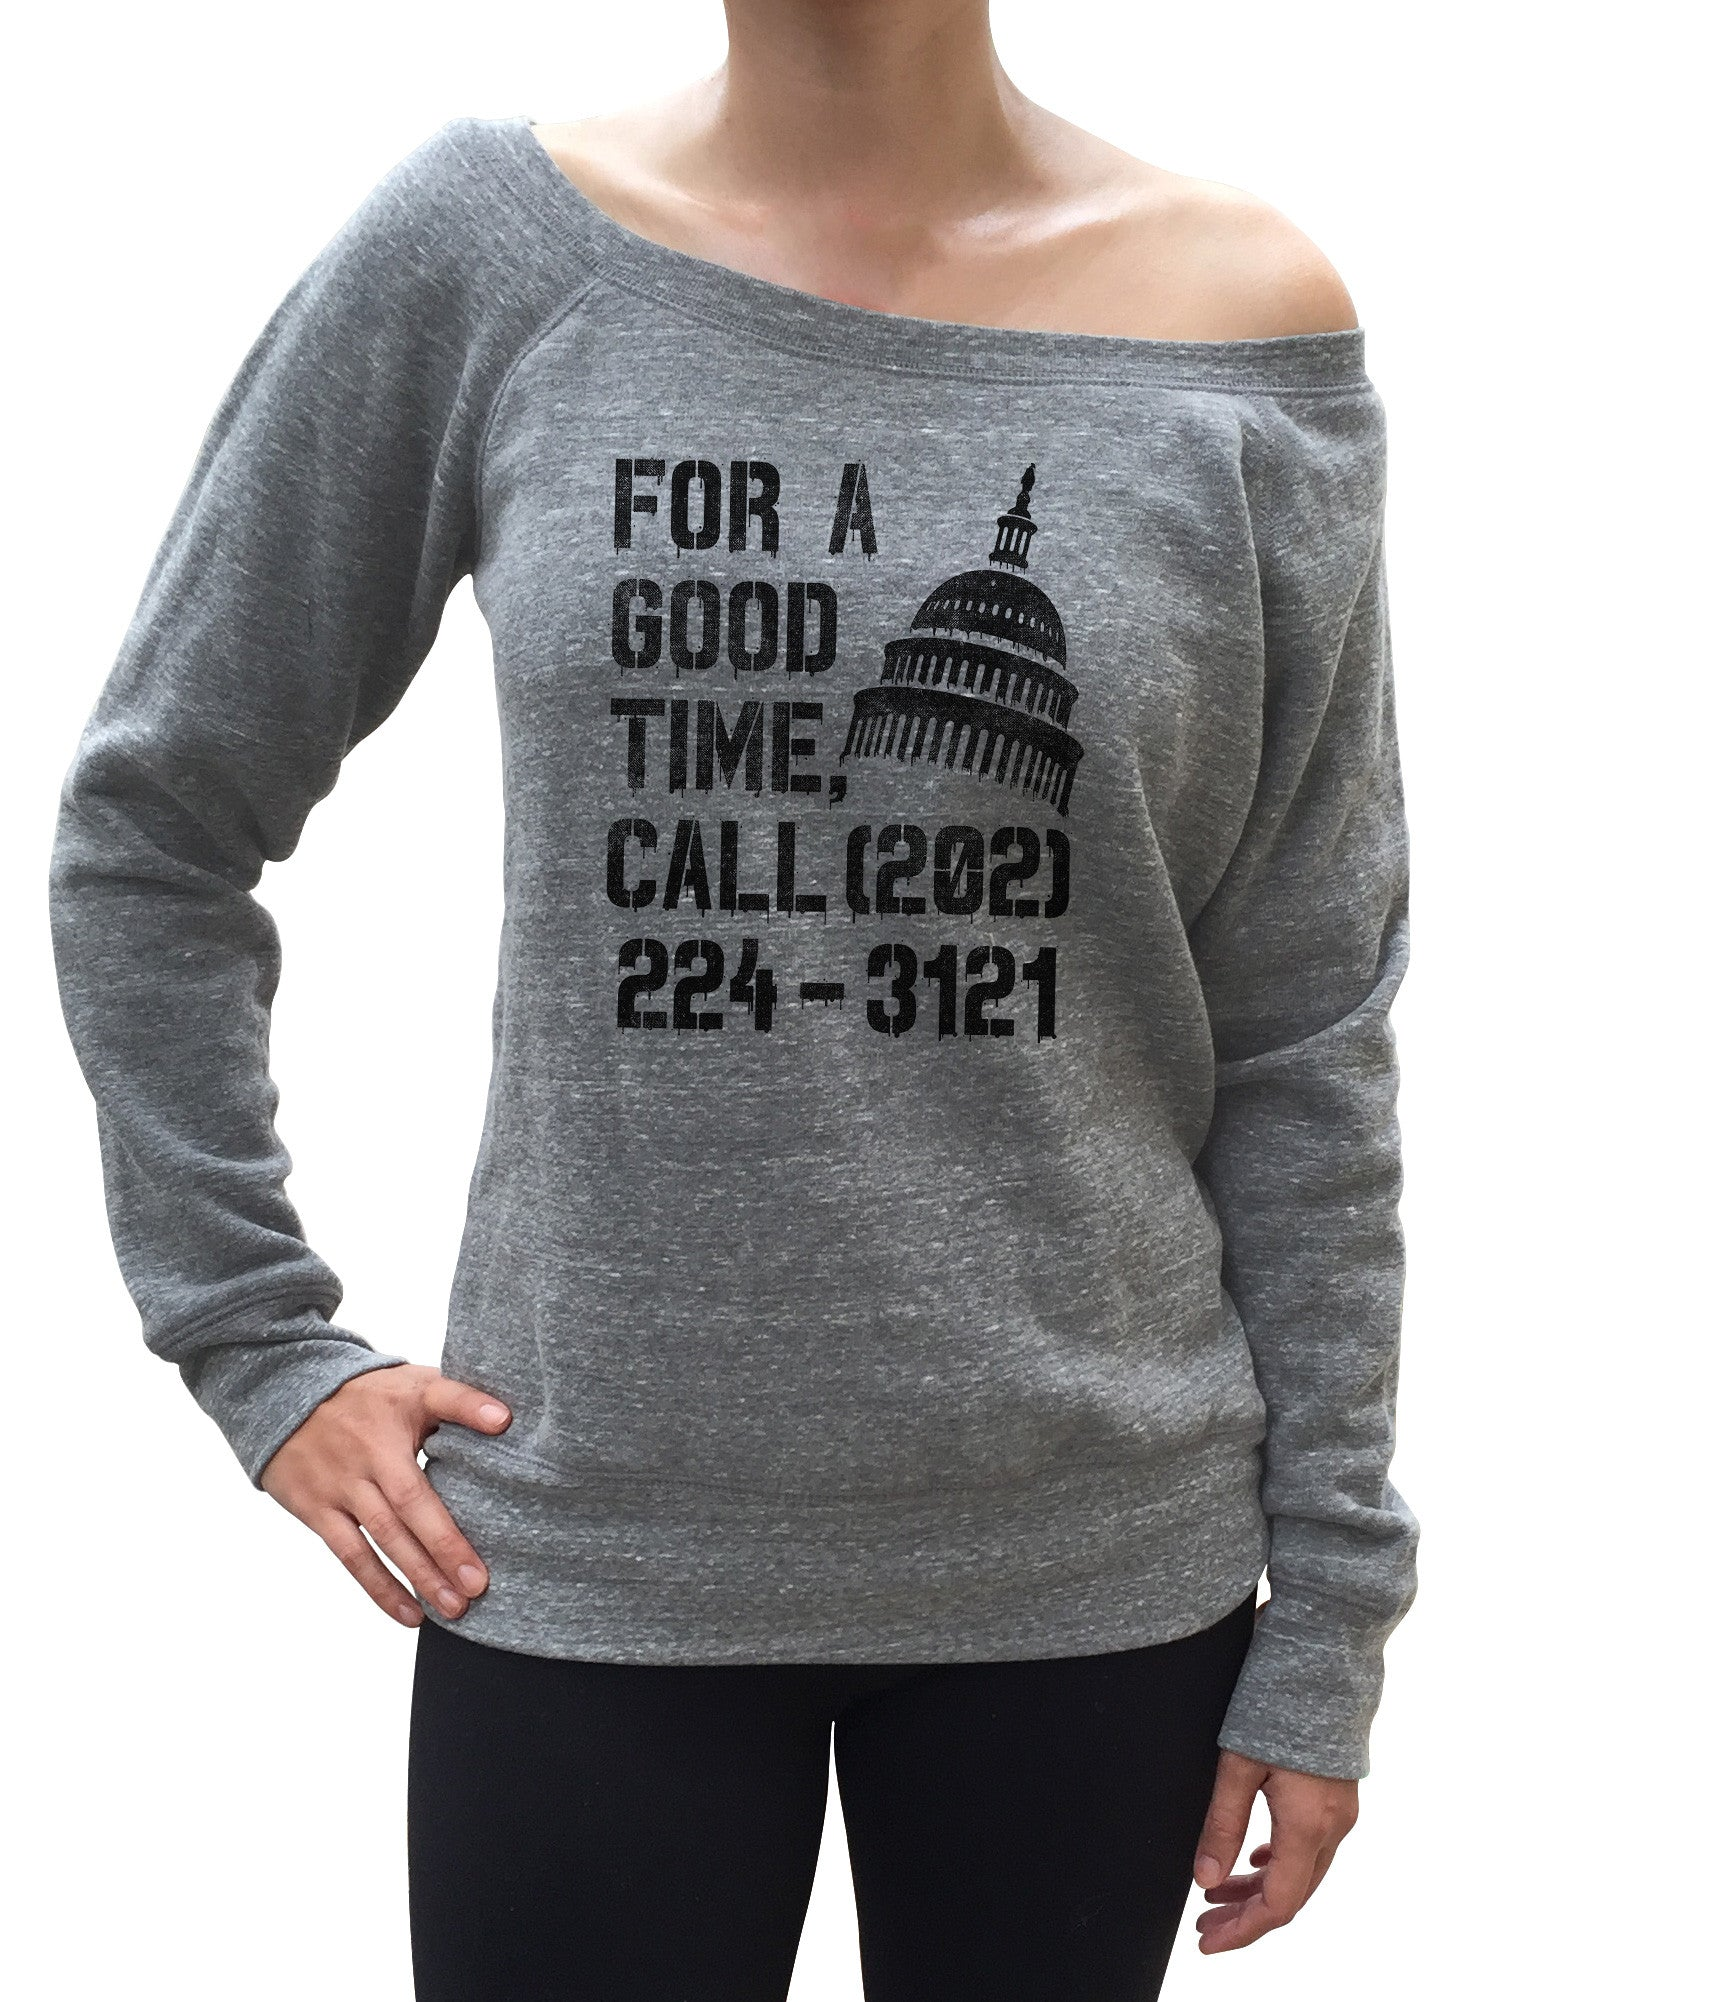 Women's For a Good Time Call Congress Scoop Neck Fleece - Activist Shirt